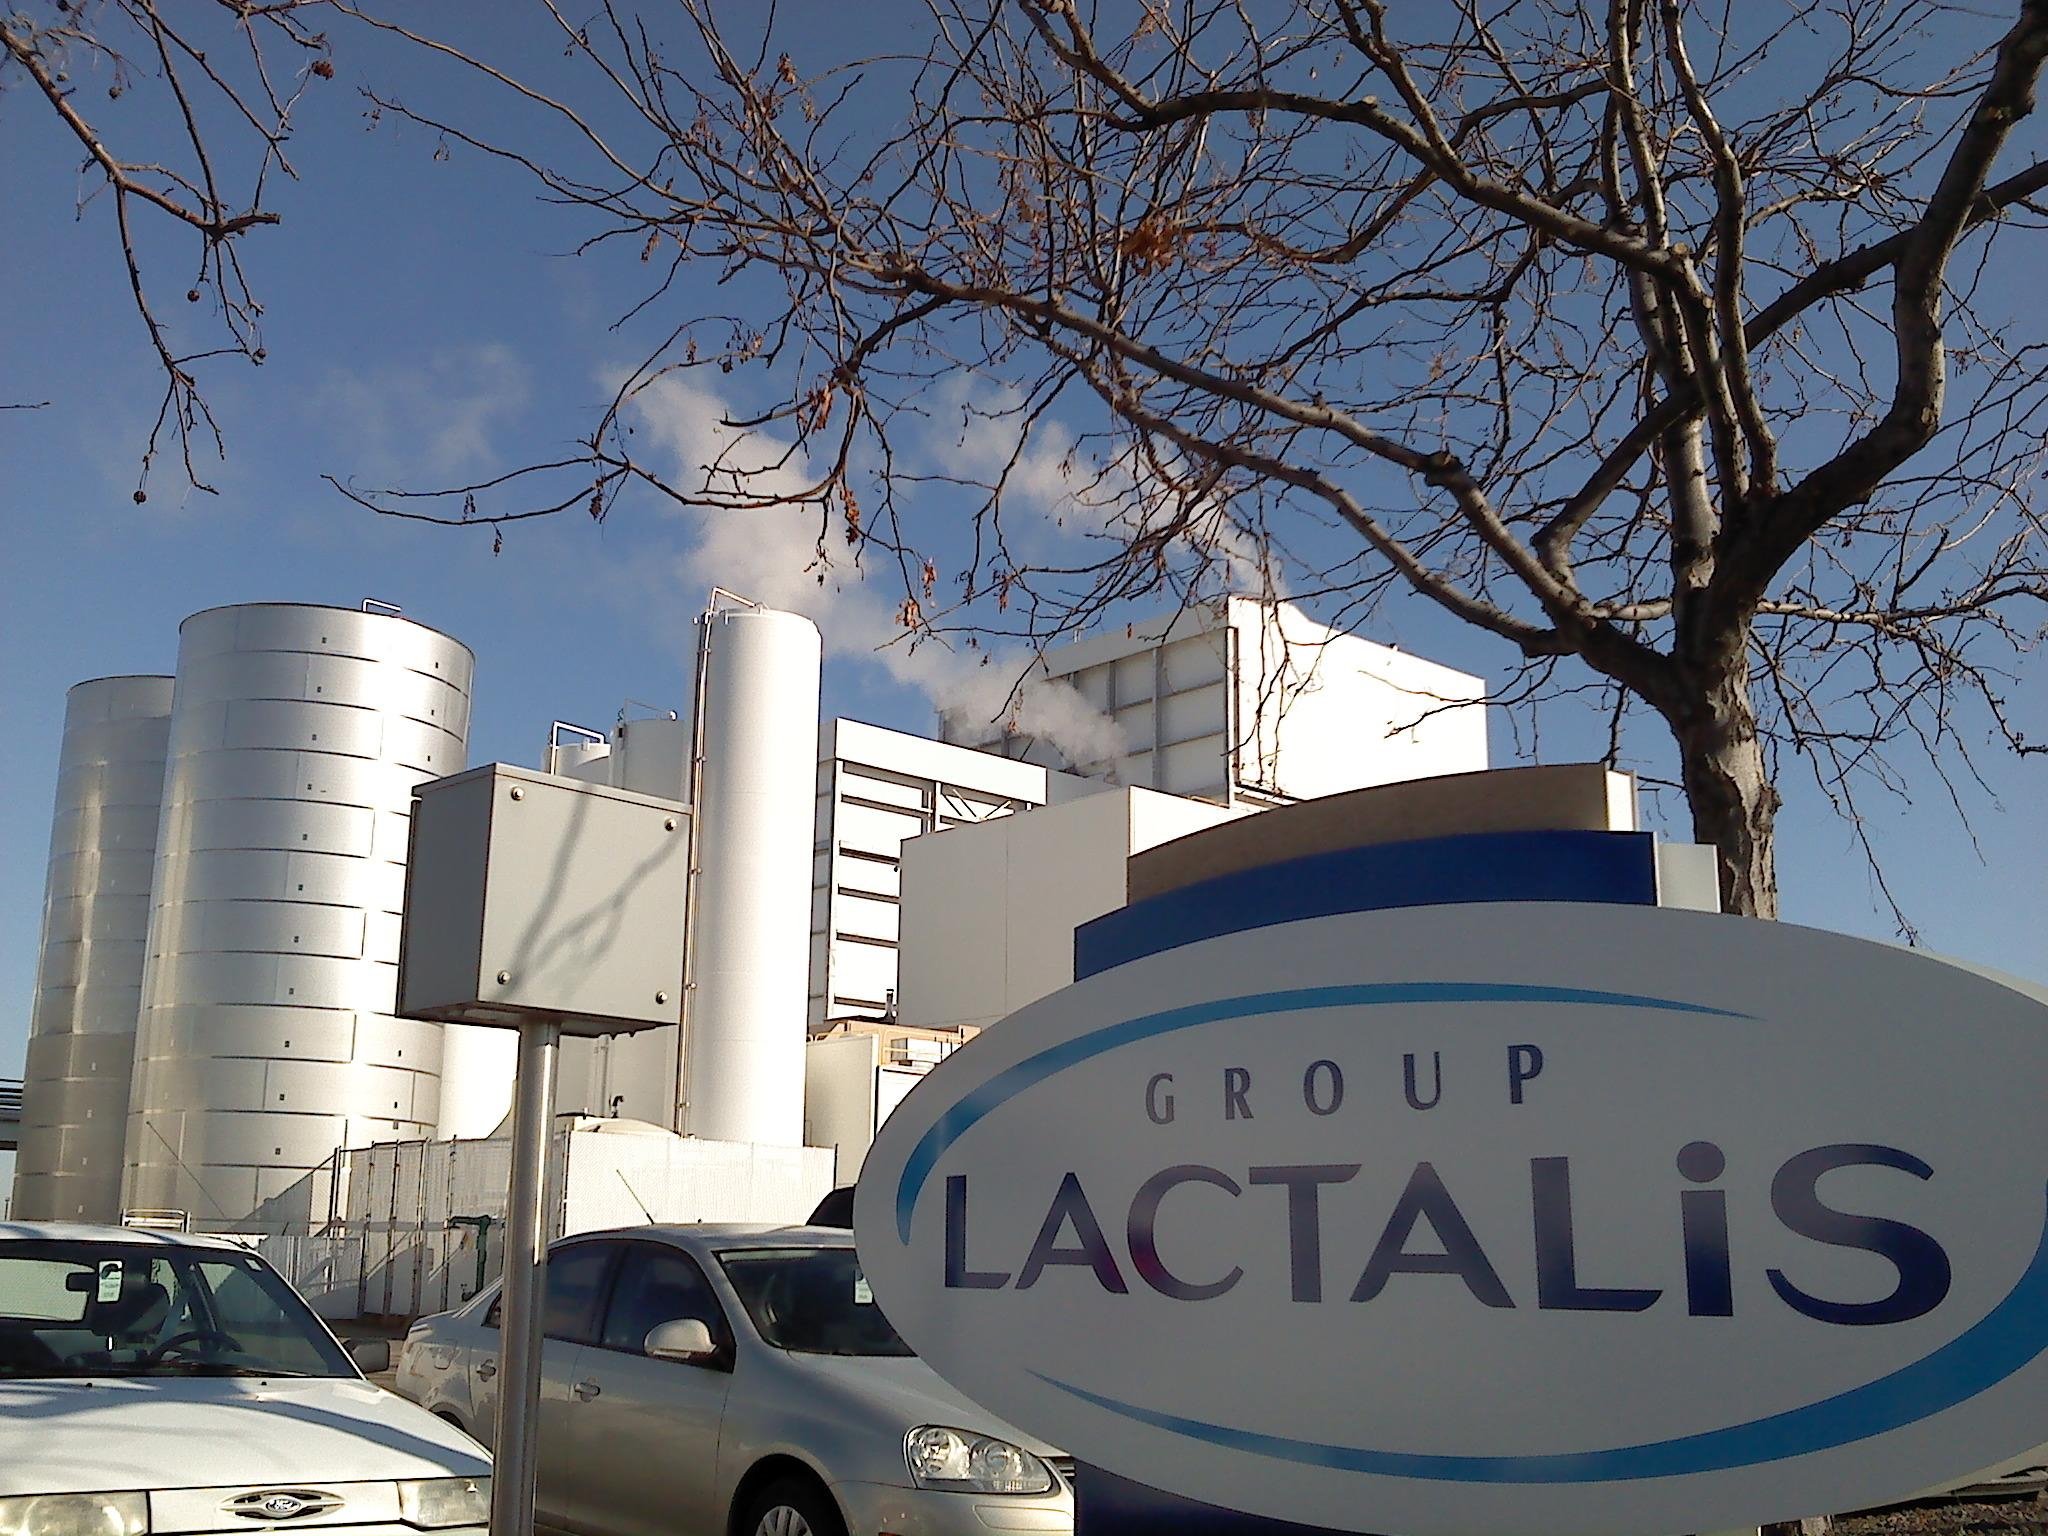 Dairy company Lactalis increases Scottish milk prices to 25ppl from December 1st